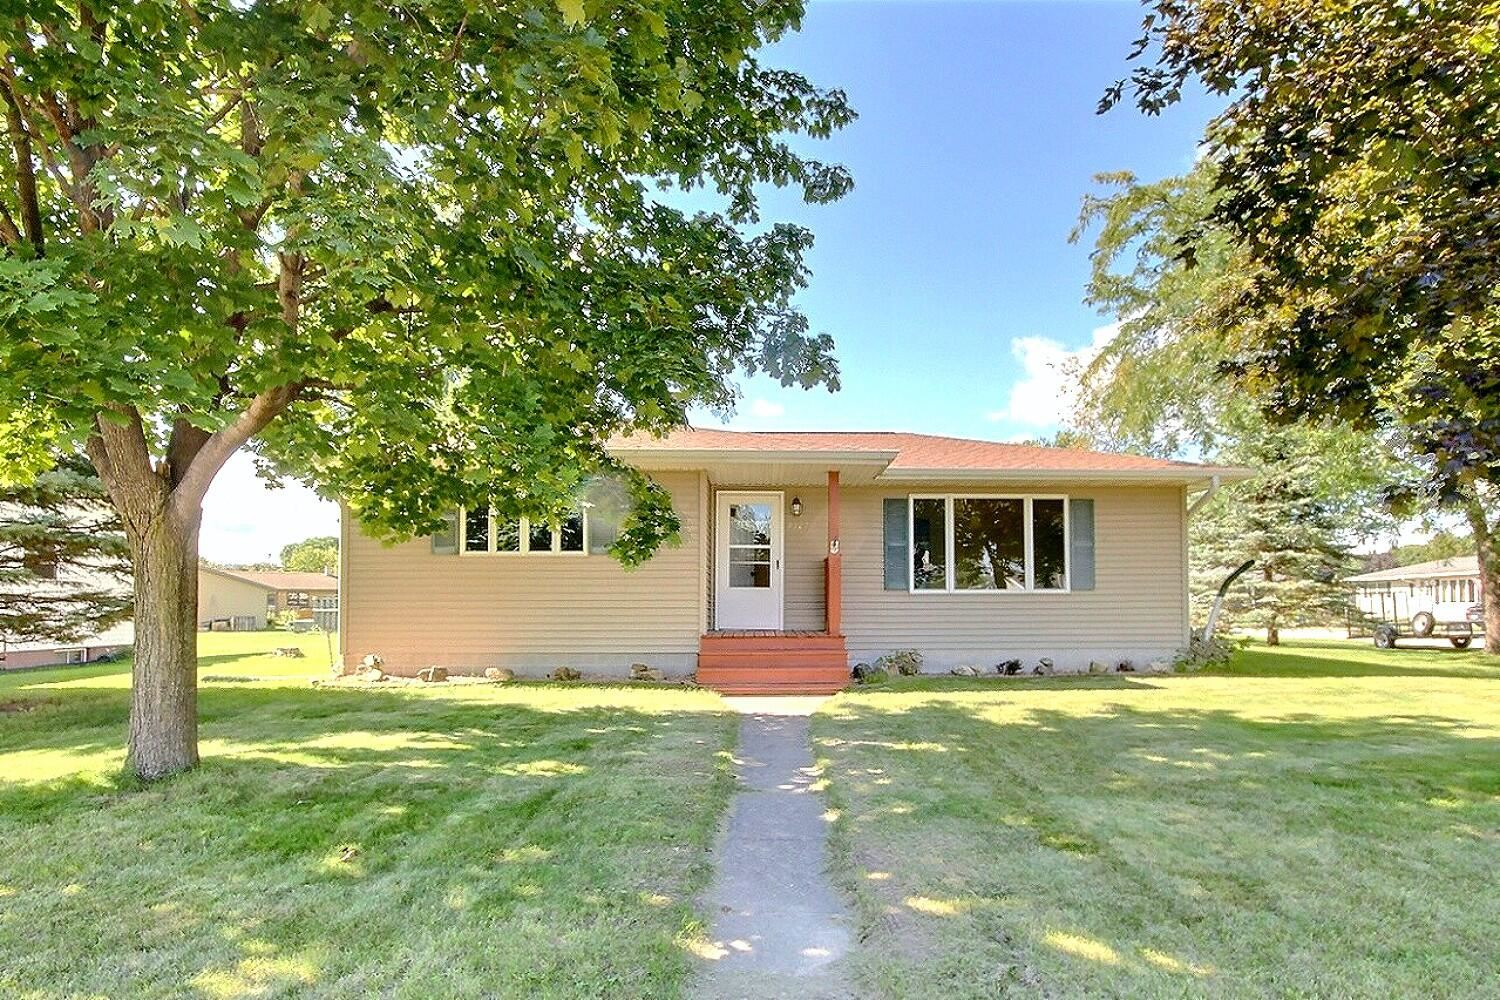 2527 Island Park Rd, Campbell, WI 54603 - MLS#: 1762986